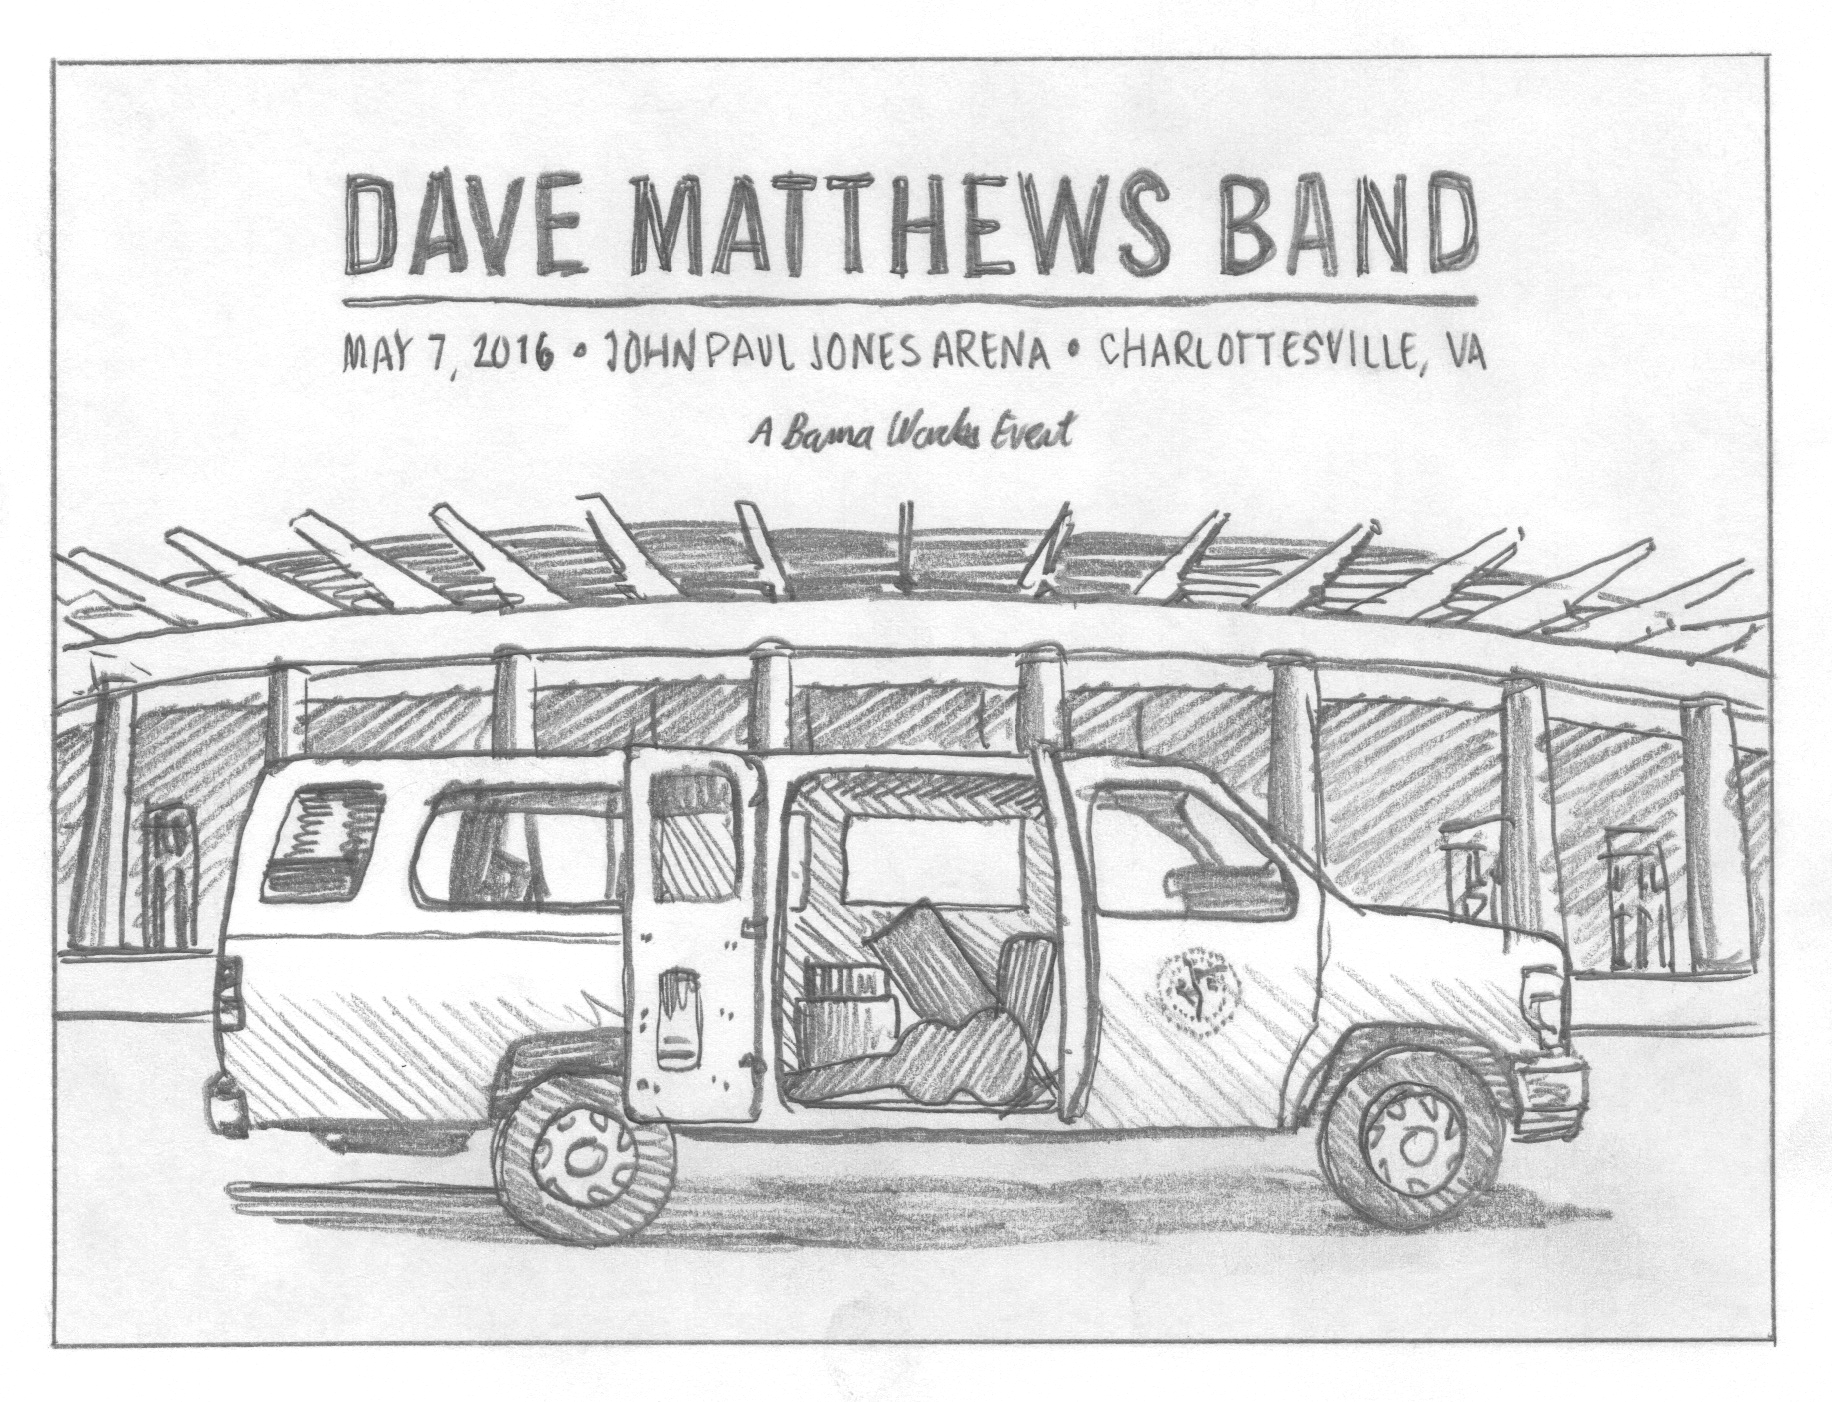 Dave Matthews Band: 25th Anniversary Poster by DKNG